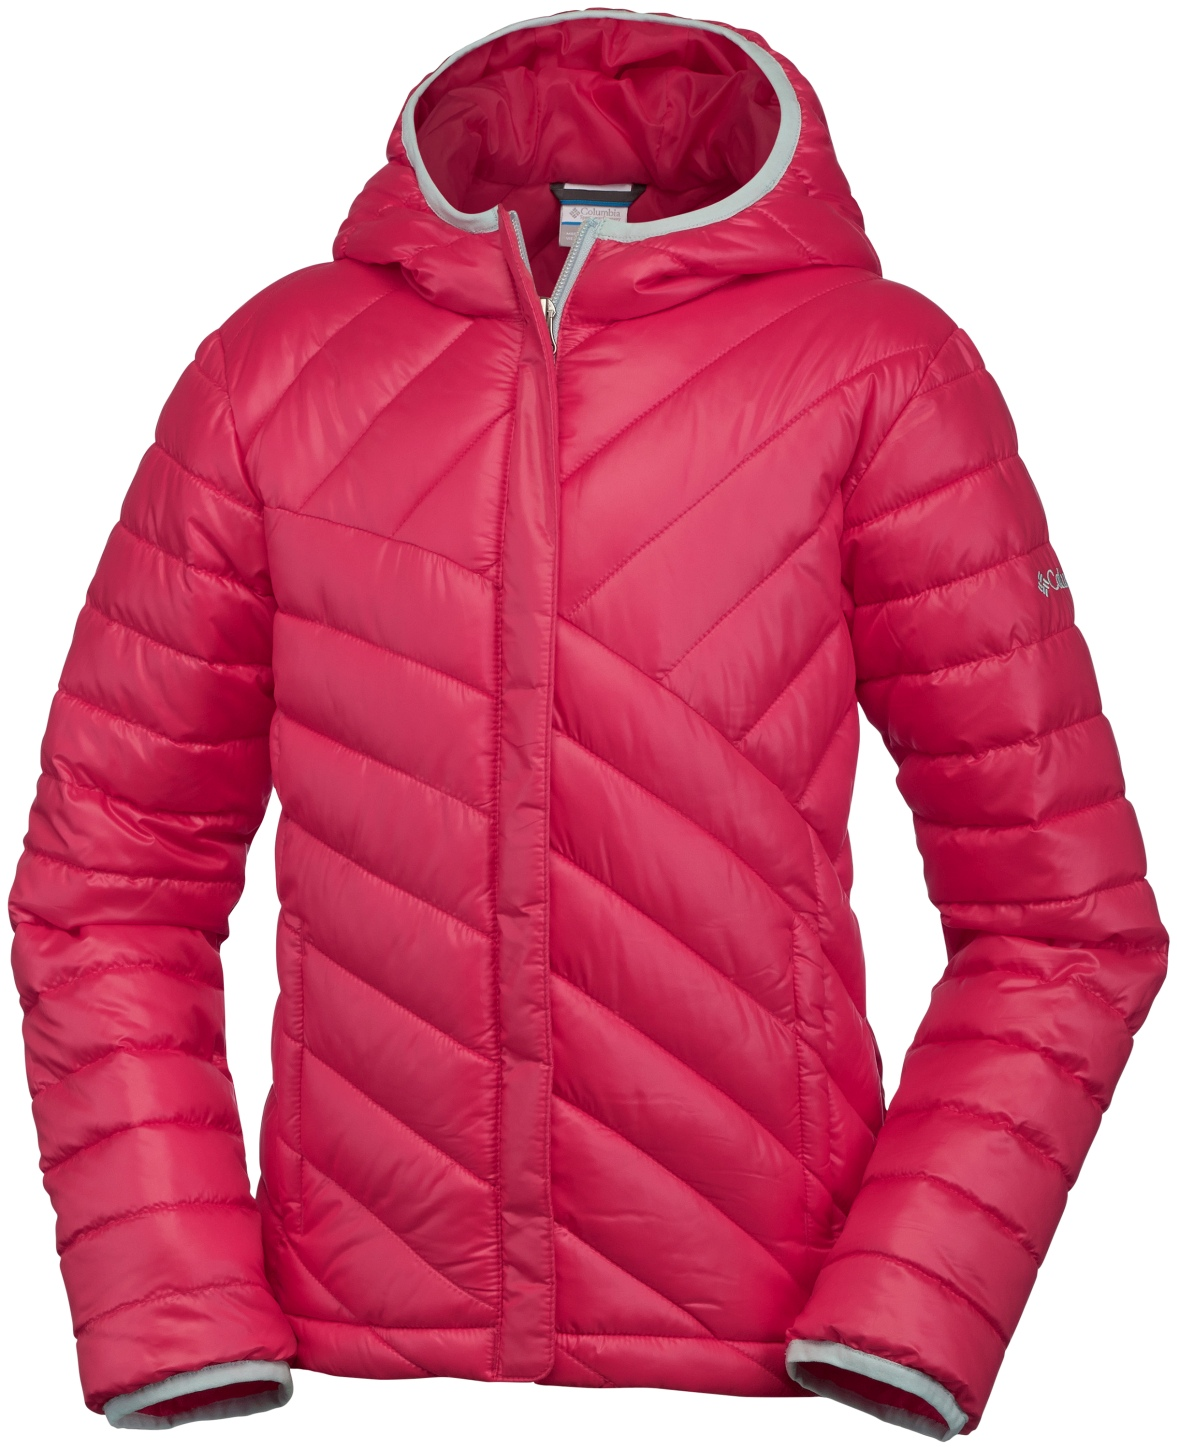 Columbia Girls' Powder Lite Puffer Jacket Red Camelia-30